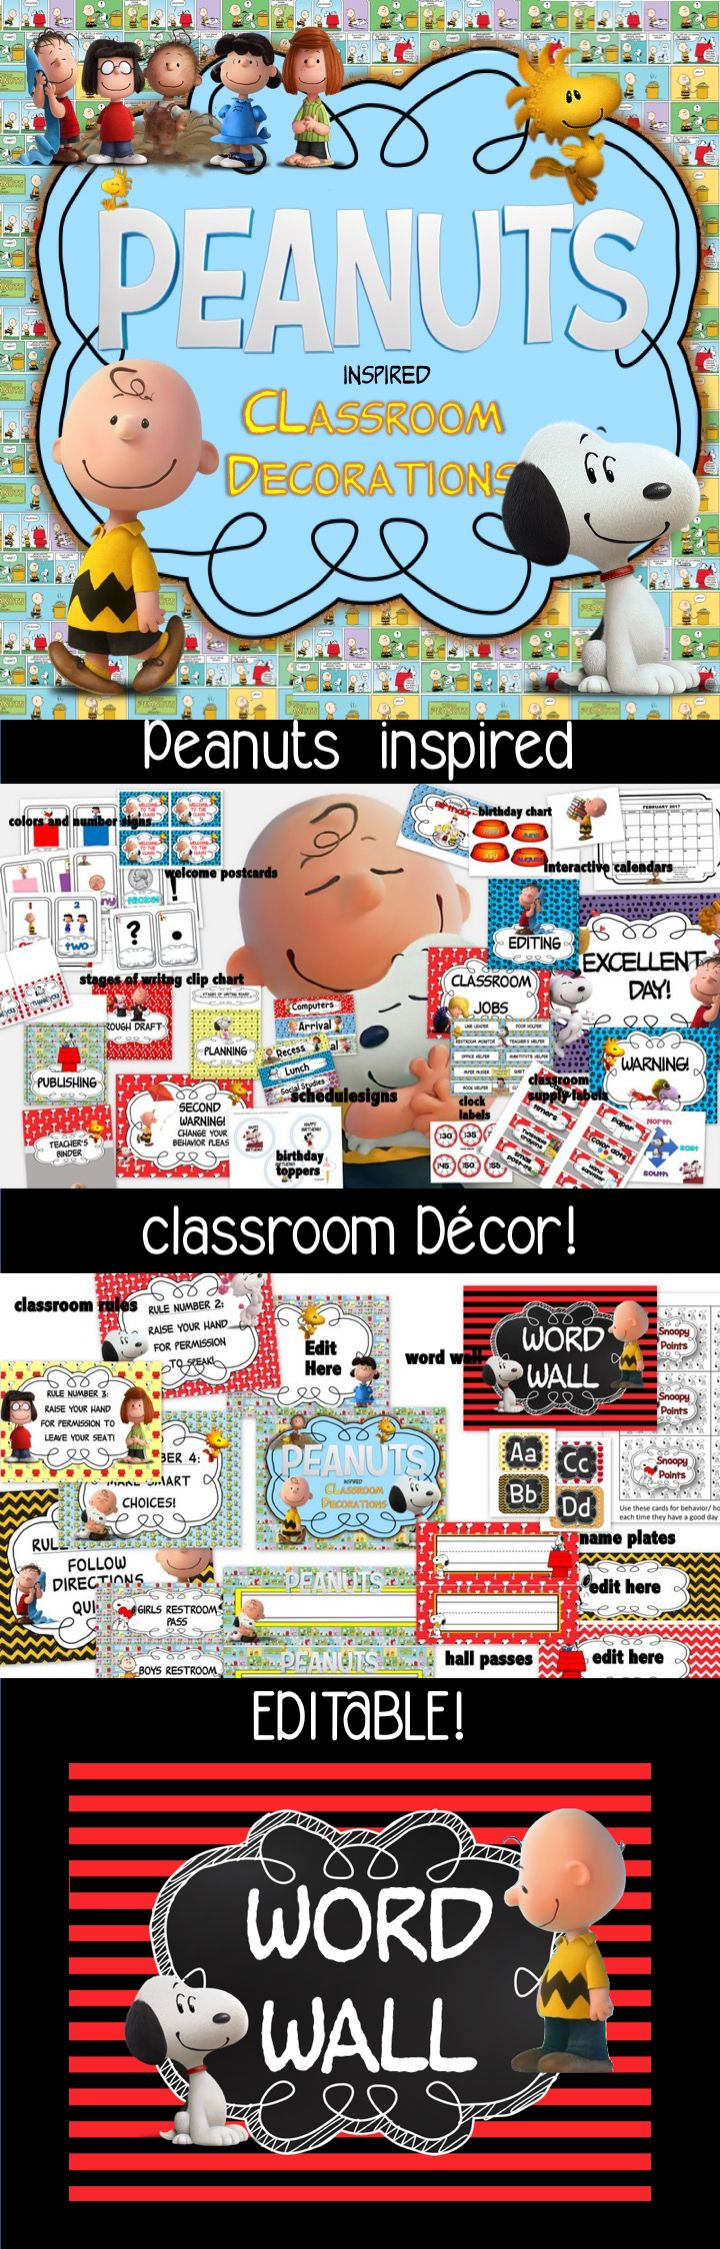 93 Best Education Snoopy Images On Pinterest Snoopy Classroom